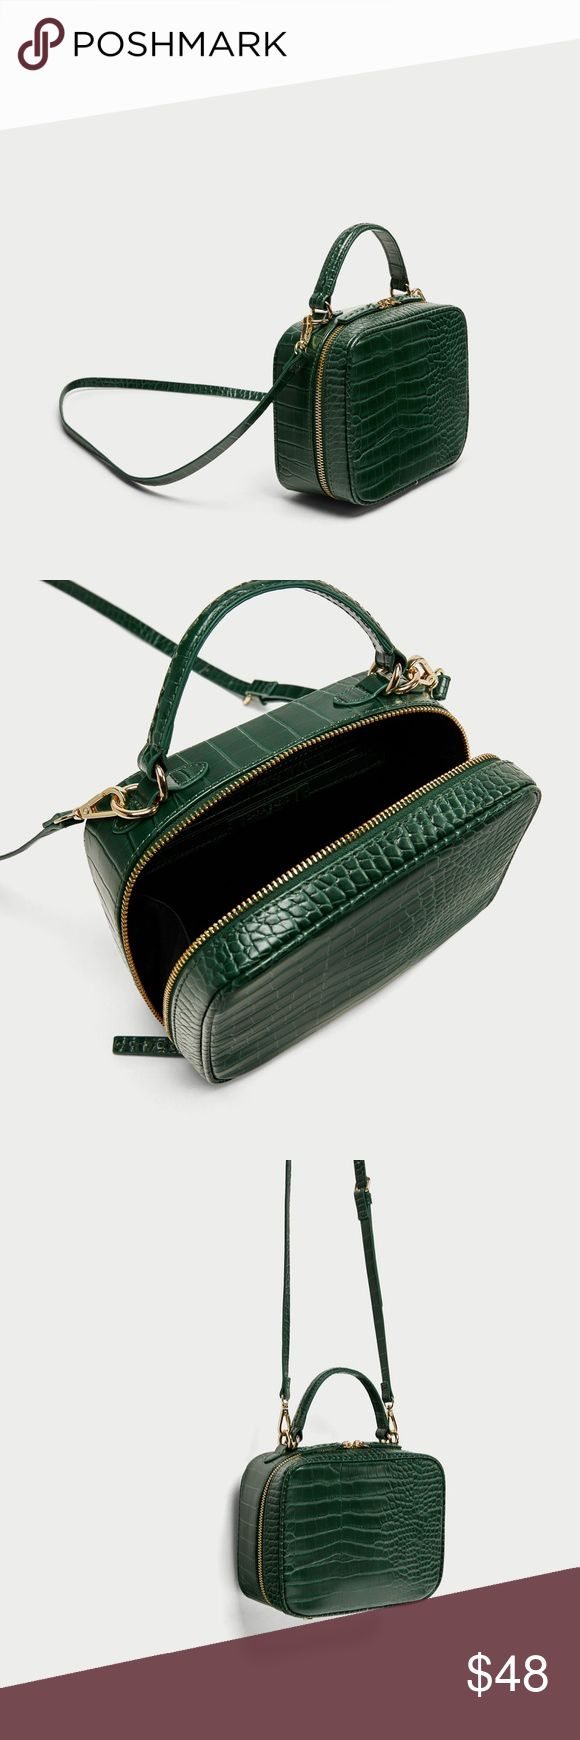 Zara EMBOSSED MESSENGER BAG Green- NWT Green crossbody bag with an embossed finish, top handle and adjustable and detachable shoulder strap. Features gold metal hardware, lined interior with pocket and top zip closure.  Height x Width x Depth: 14.5 x 19.5 x 8 cm. / 5.7 x 7.6 x 3.1″  COMPOSITION OUTER SHELL  100% polyurethane  LINING  100% polyester  FILLING  100% ethylene vinyl acetate Zara Bags Crossbody Bags